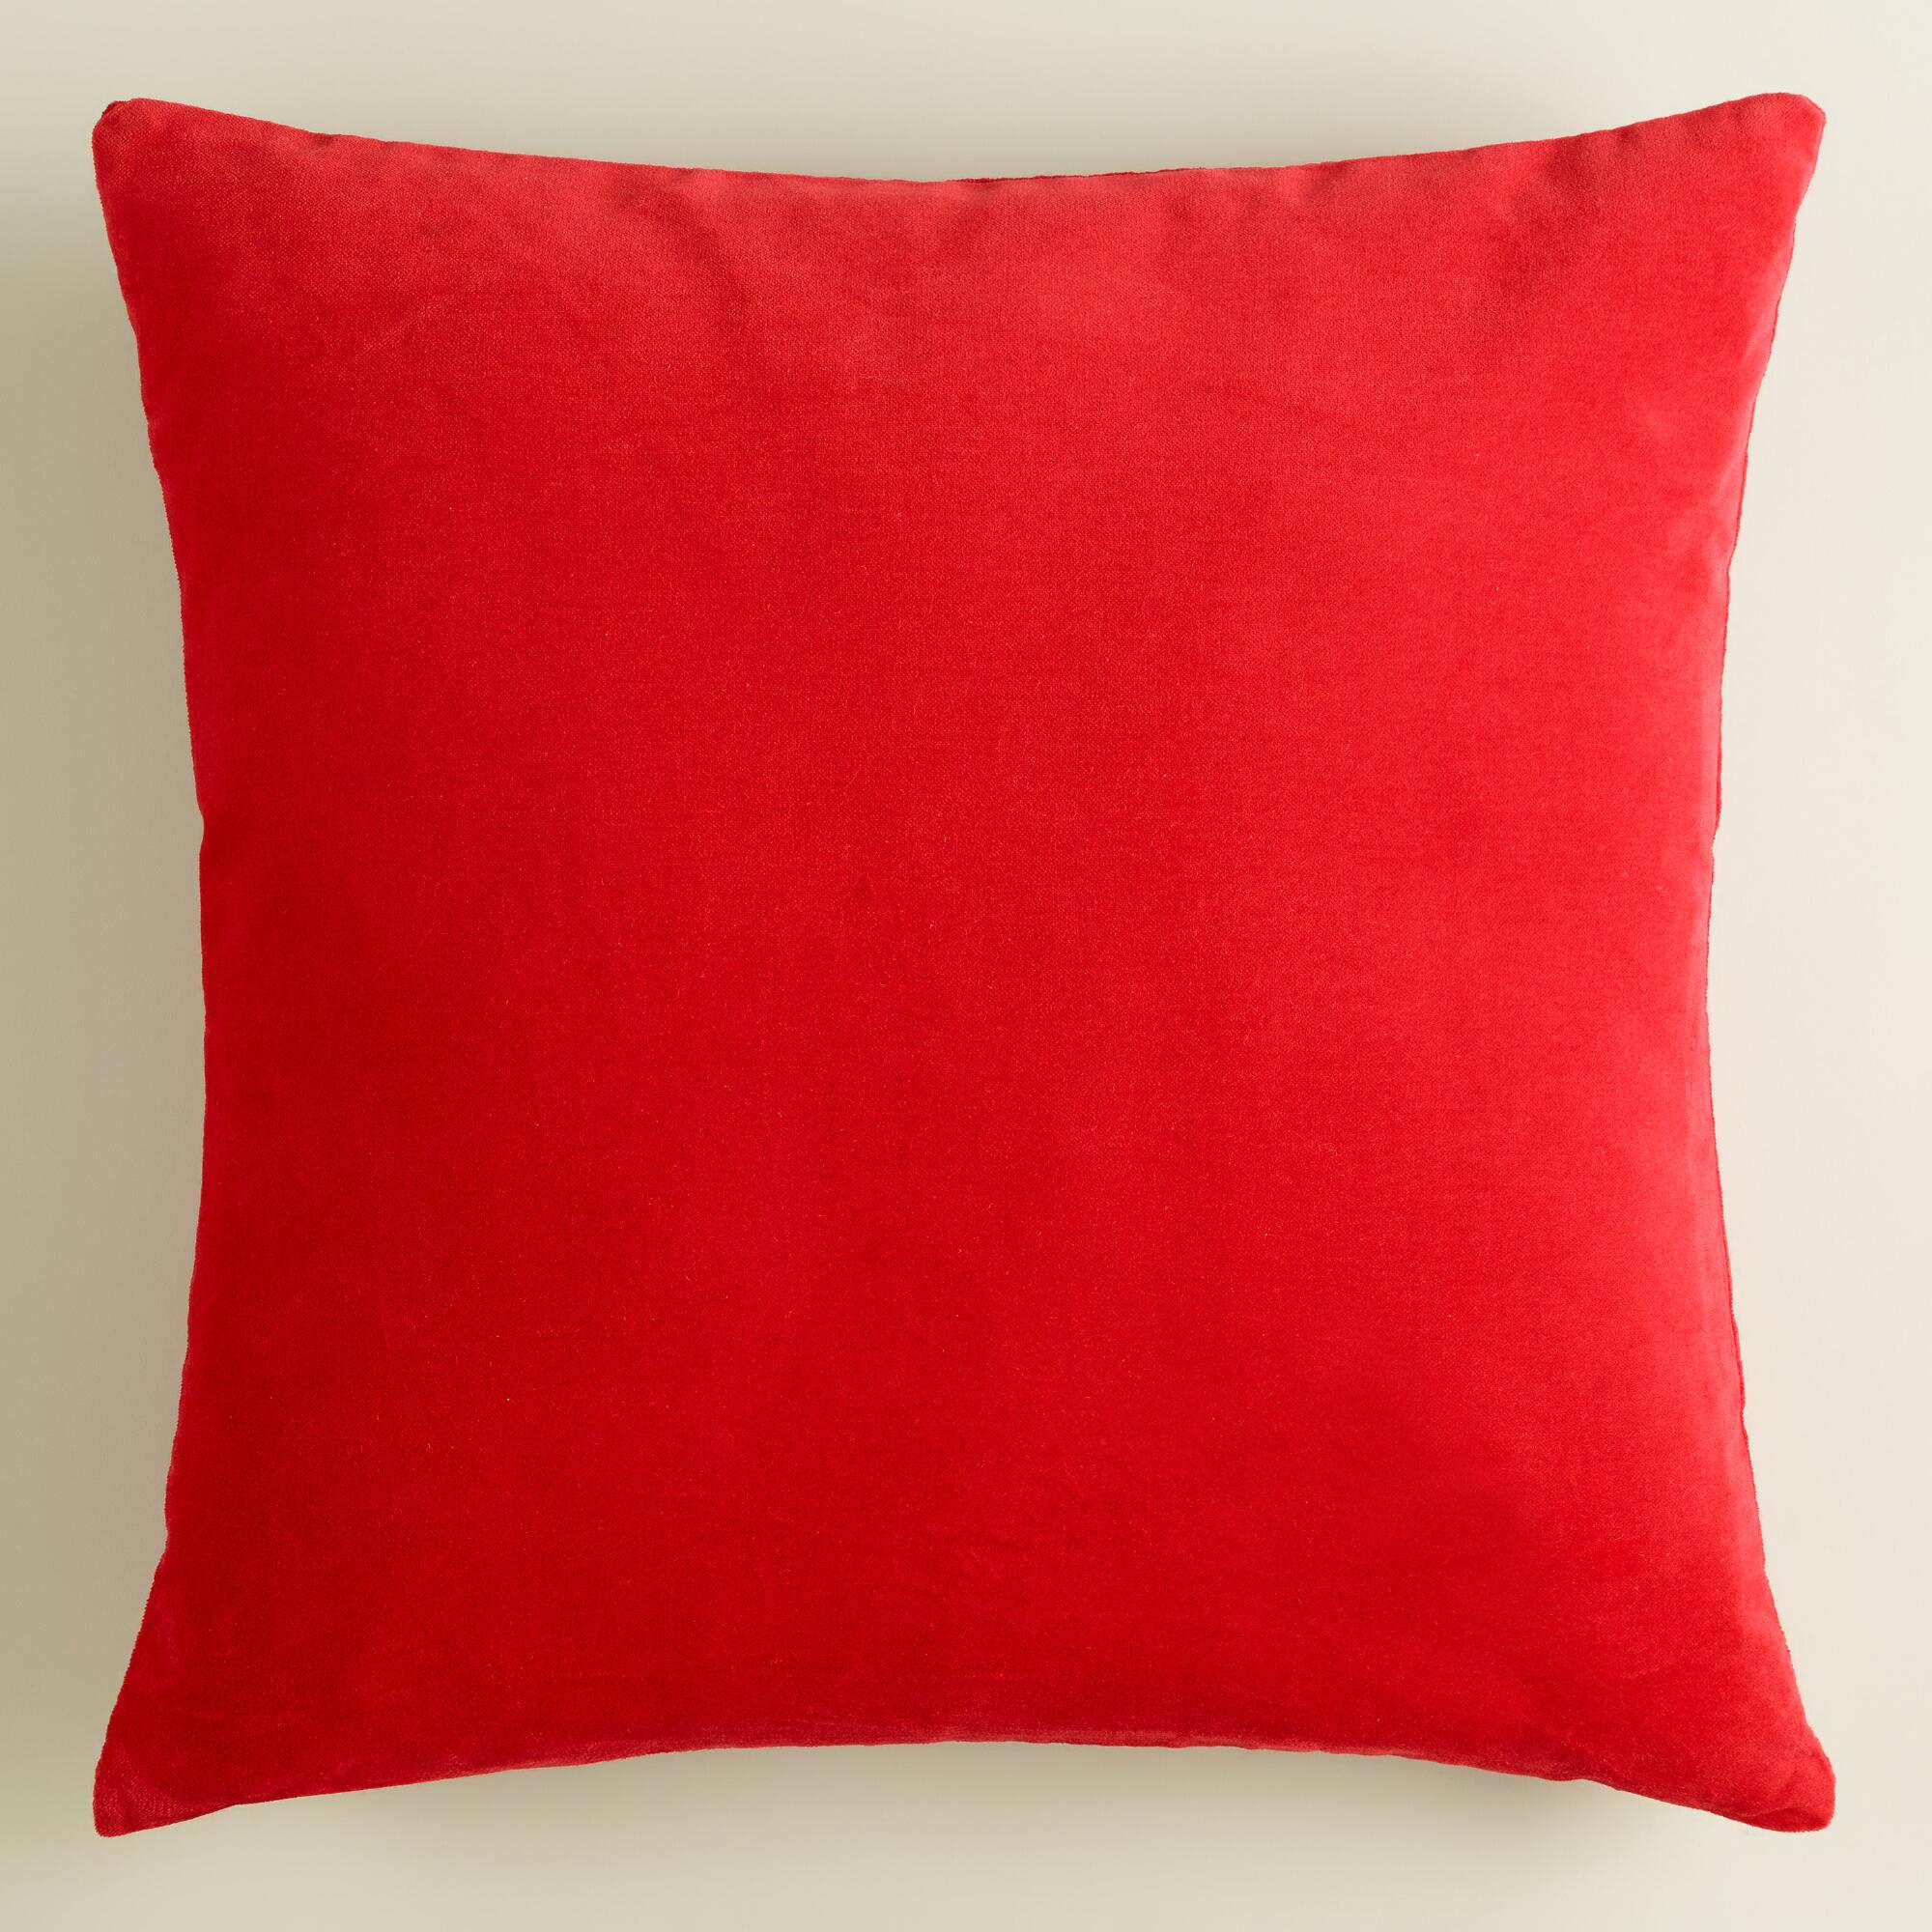 Throw Pillow Red : Poppy Red Velvet Throw Pillow World Market